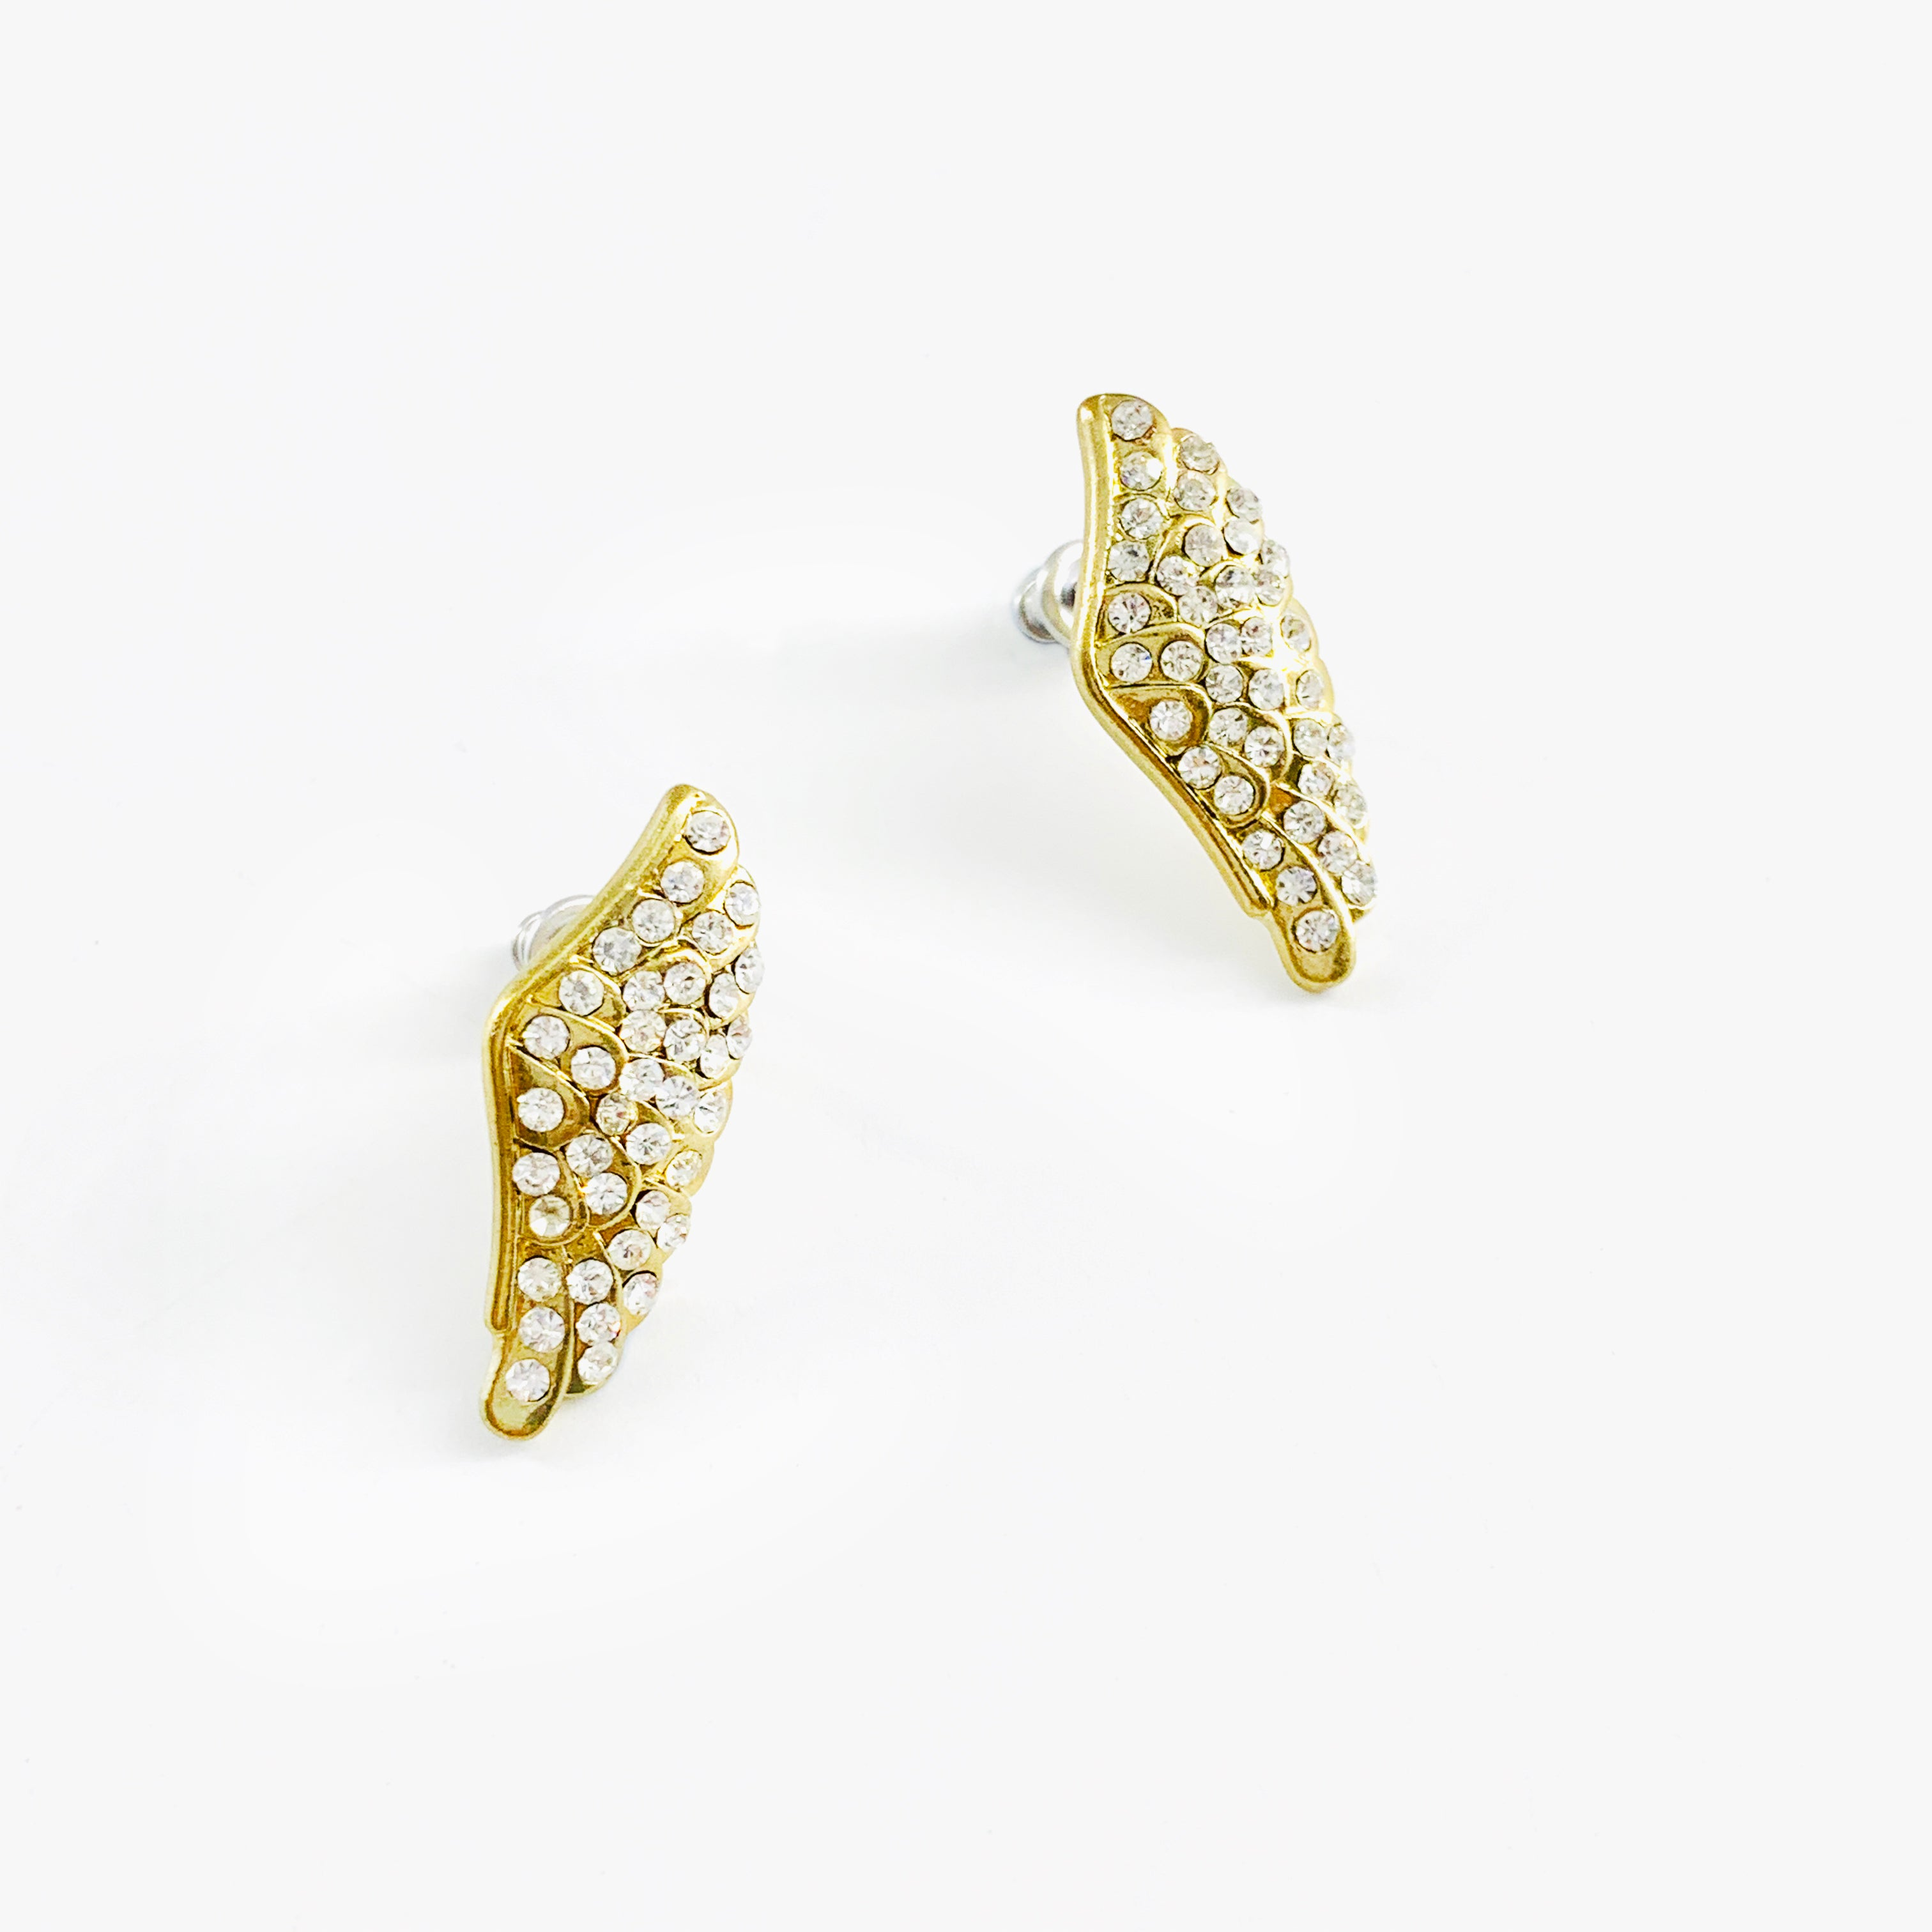 Gold wing earrings with diamante stones